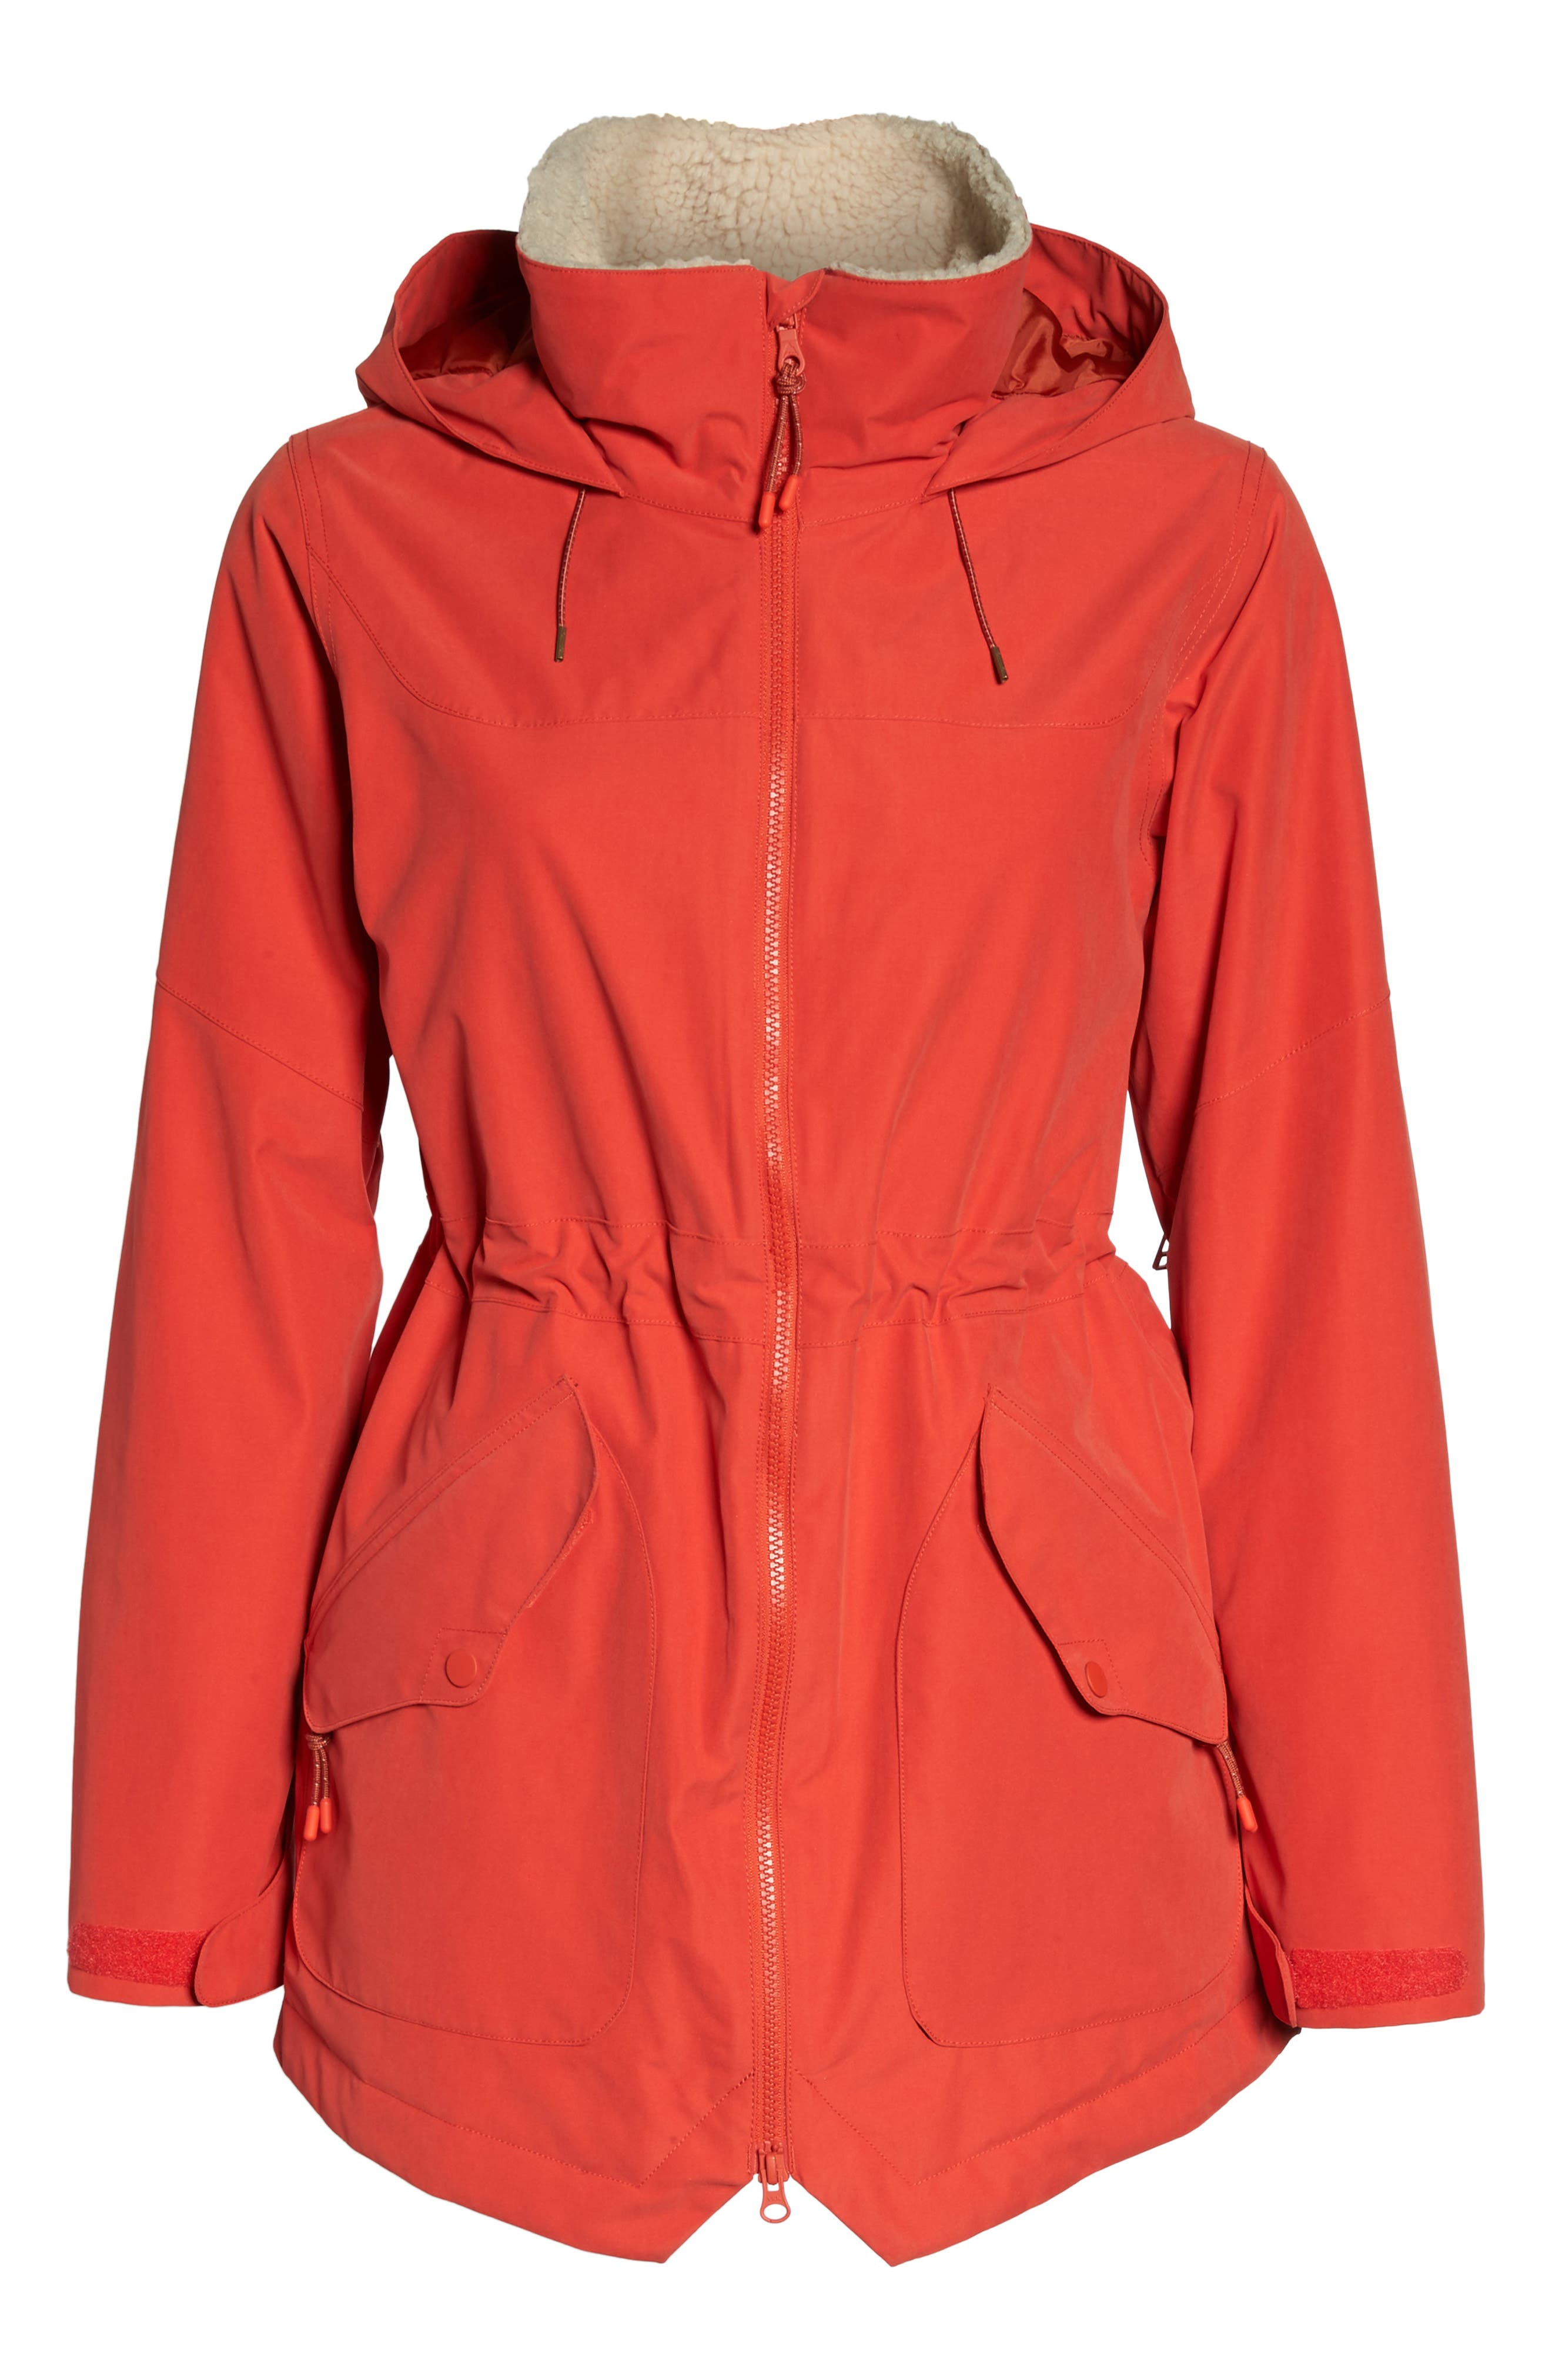 Prowess Fleece Lined Water Resistant Jacket,                             Alternate thumbnail 6, color,                             FIERY RED SUEDED